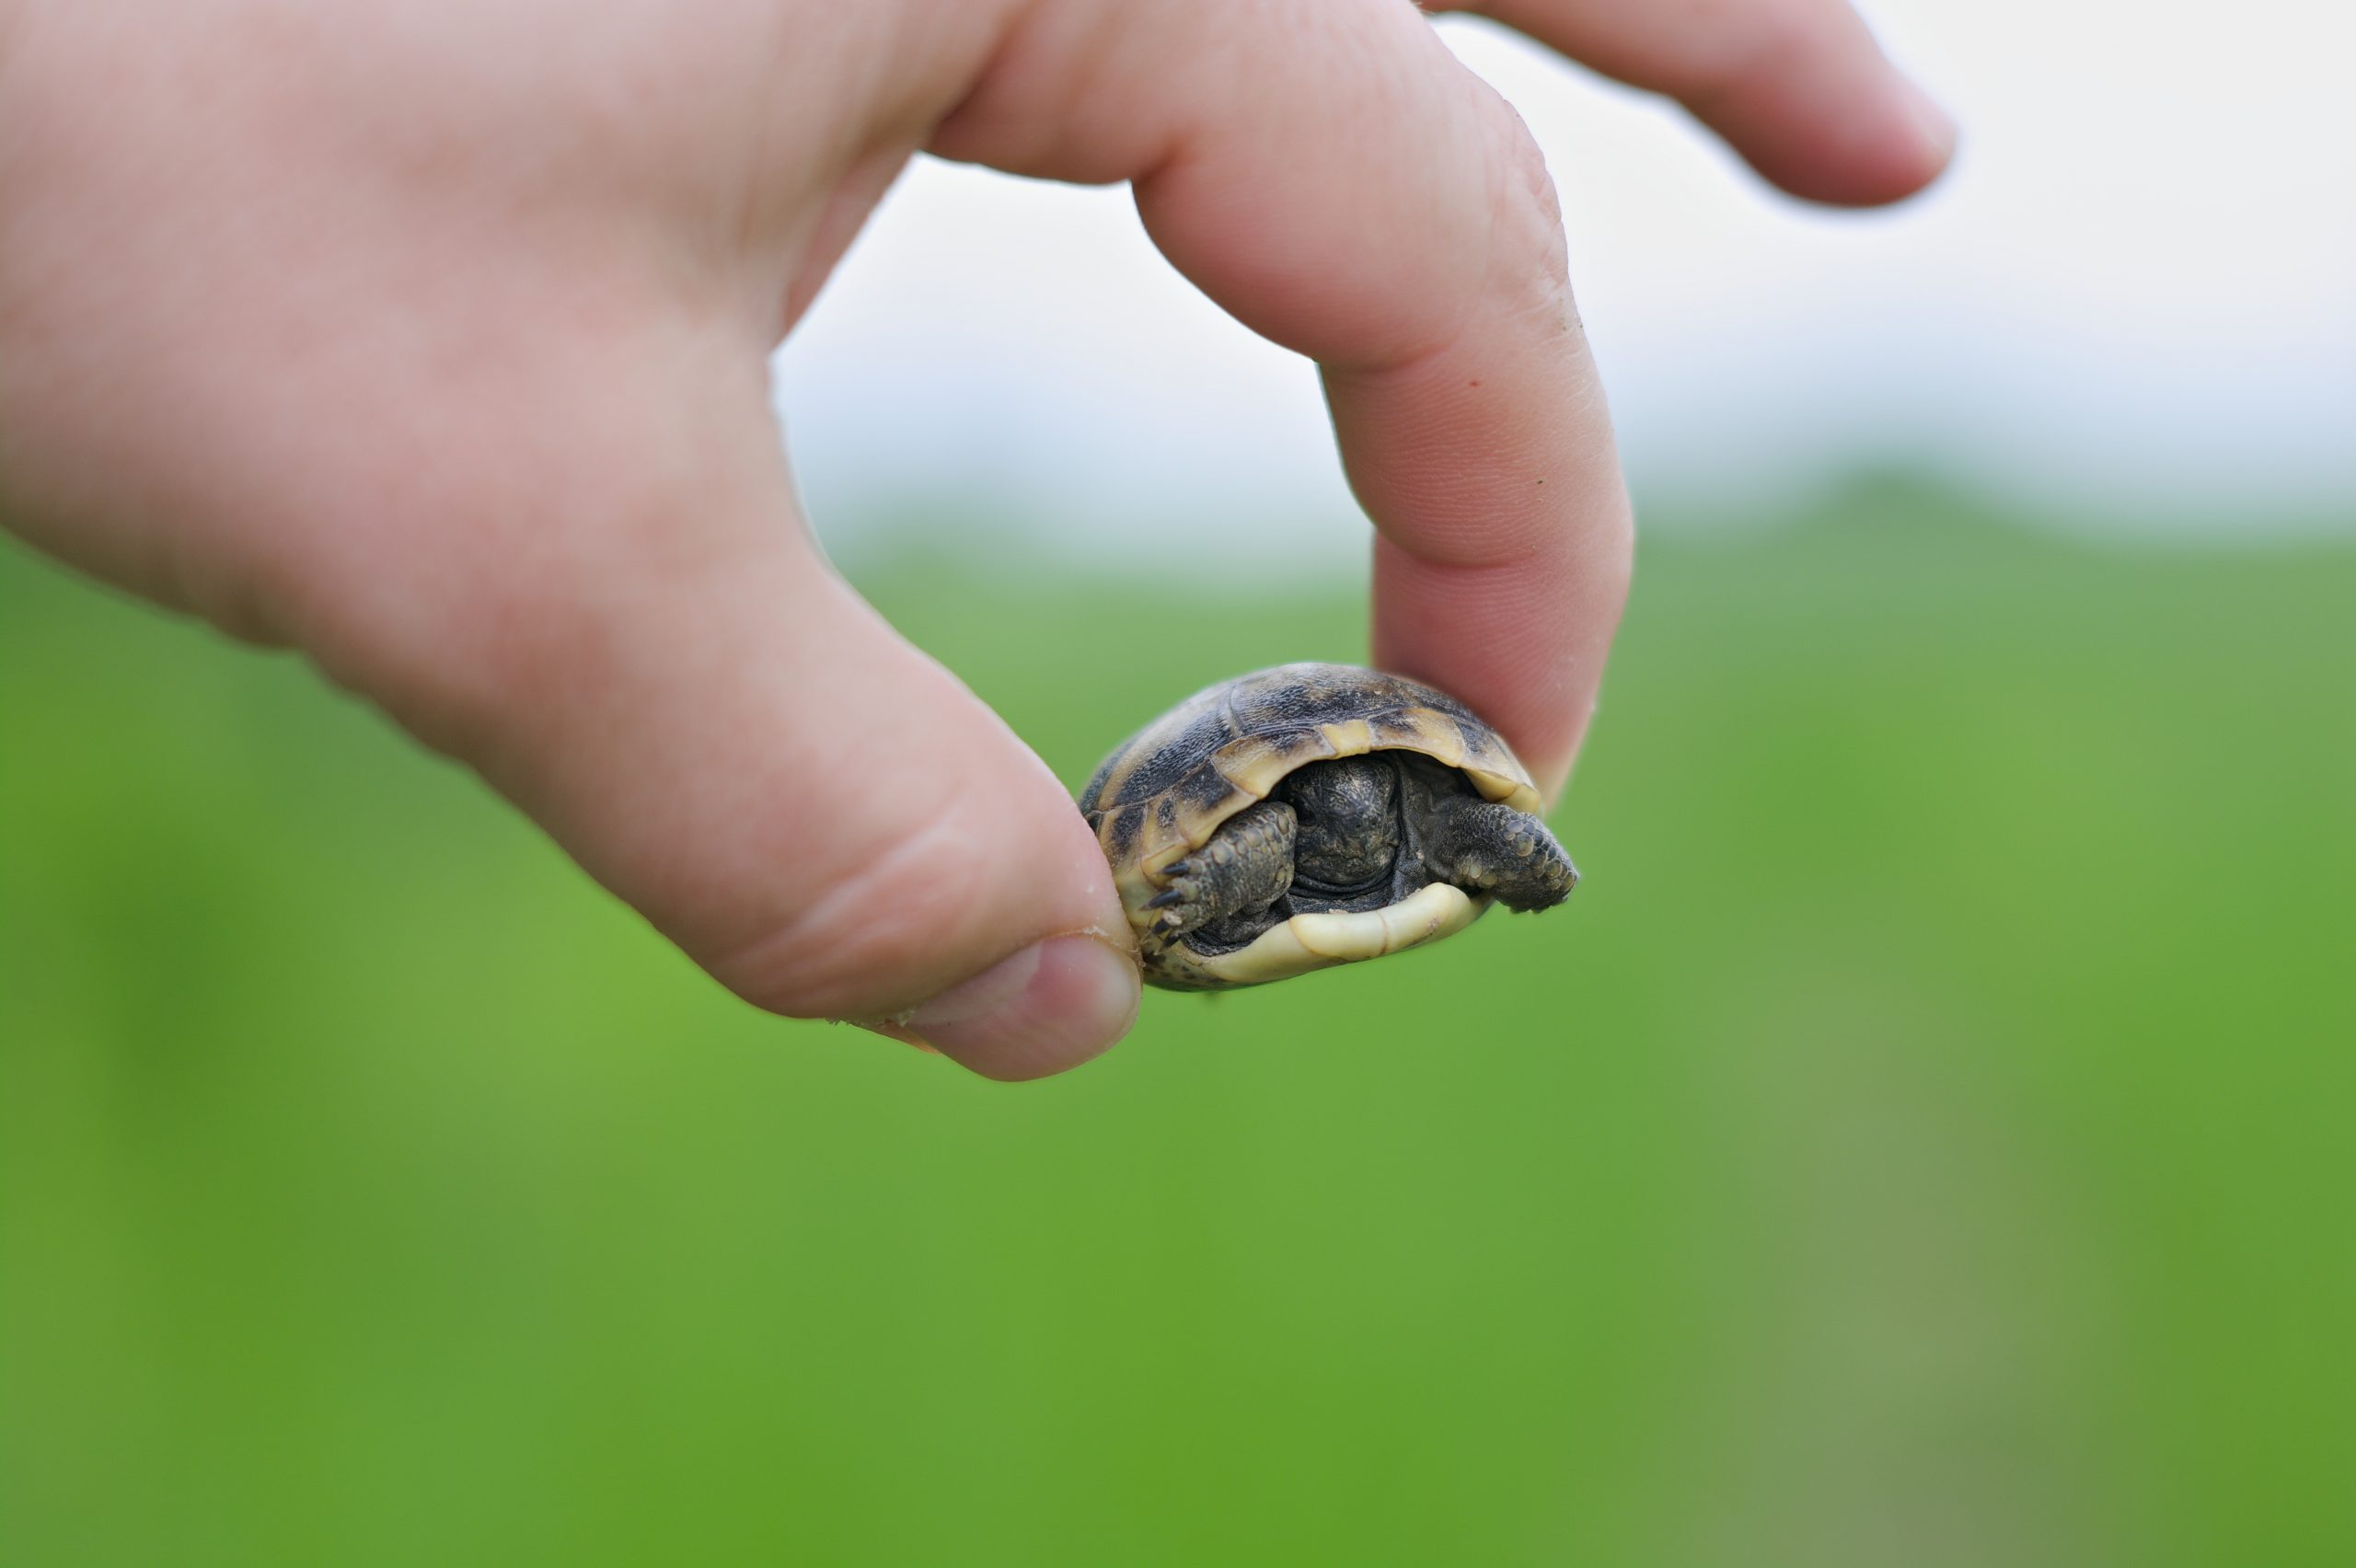 Holding baby turtle in hand